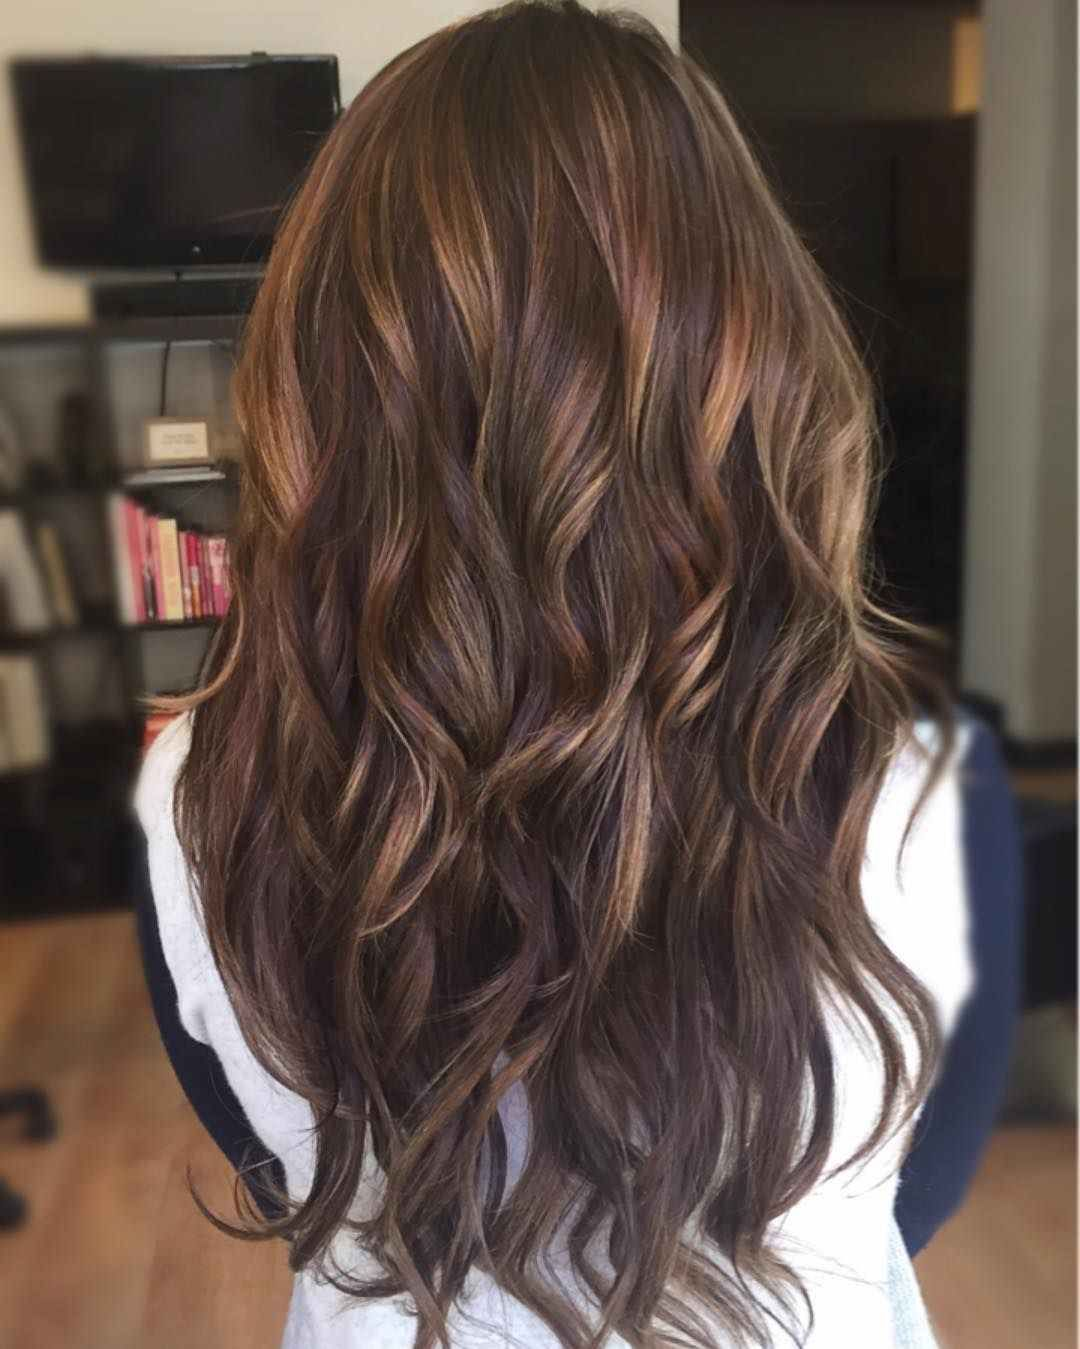 Balayage Miel Sur Cheveux Chatain Fonce Idees Pour S Inspirer Cheveux Chatains Cheveux Couleur Cheveux